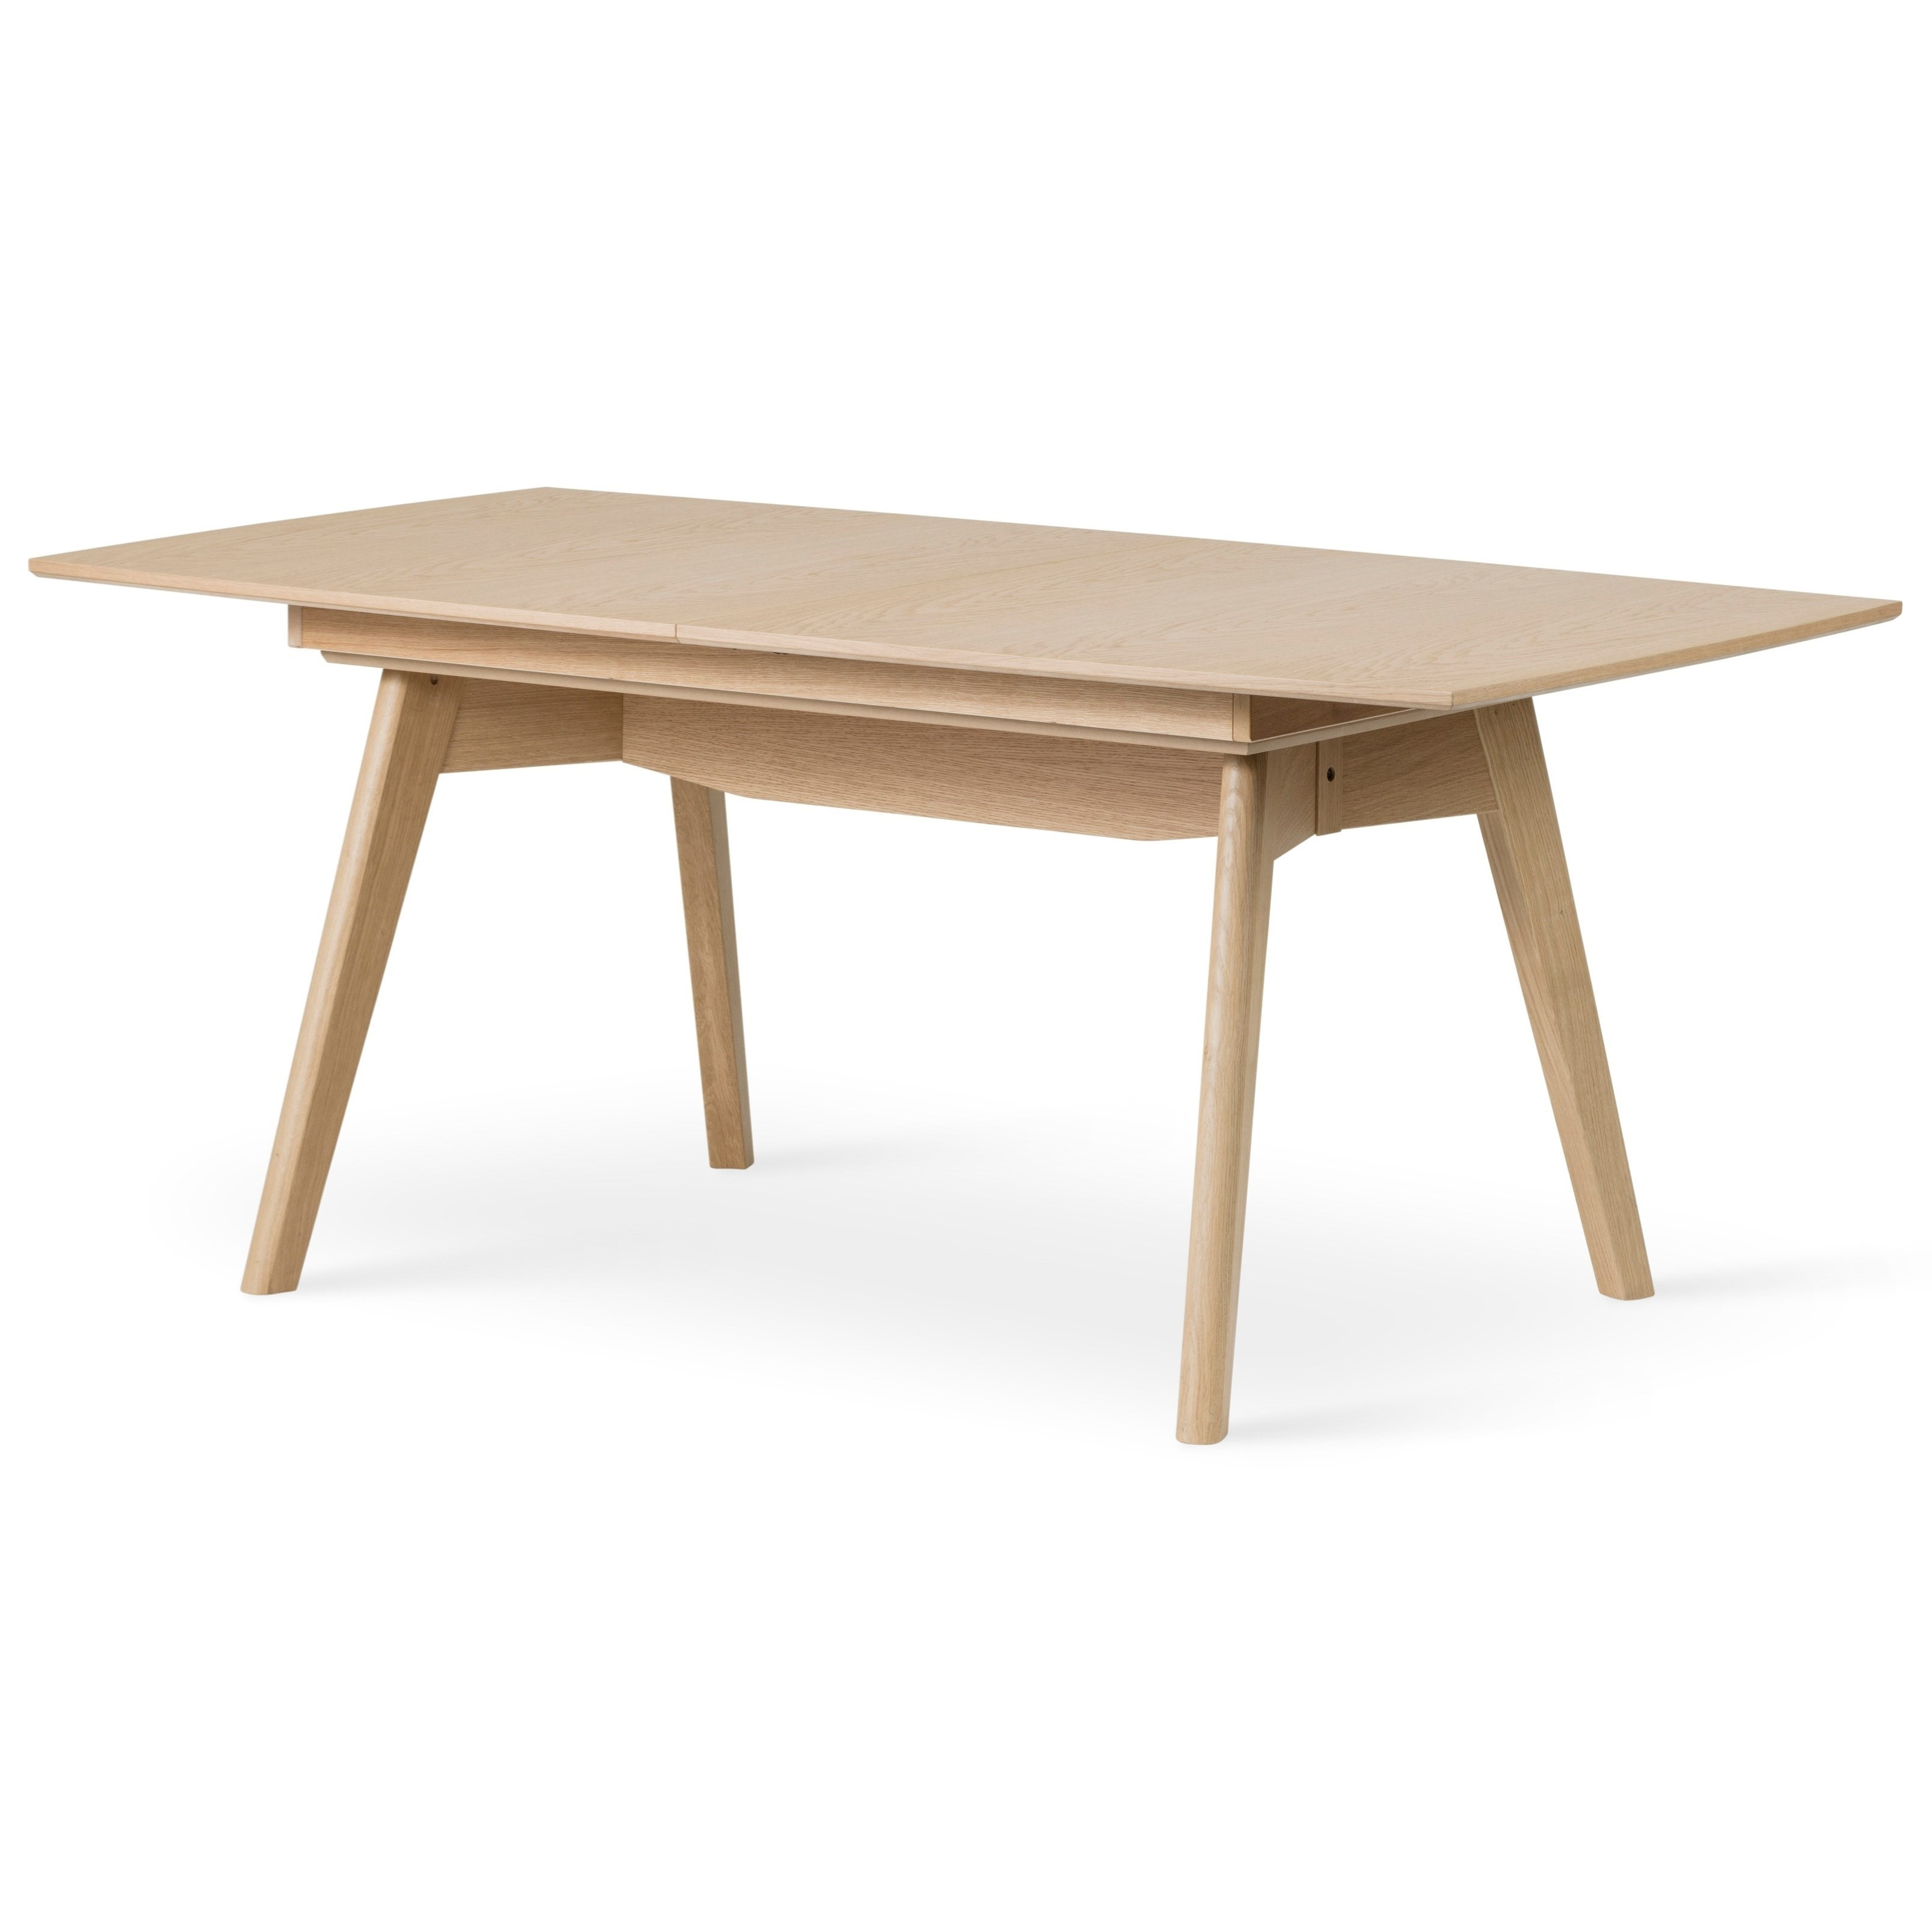 Toscana Dining Tables In Latest Stressless Toscana T100 Leg Dining Table With 1 Leaf Insert (View 4 of 25)